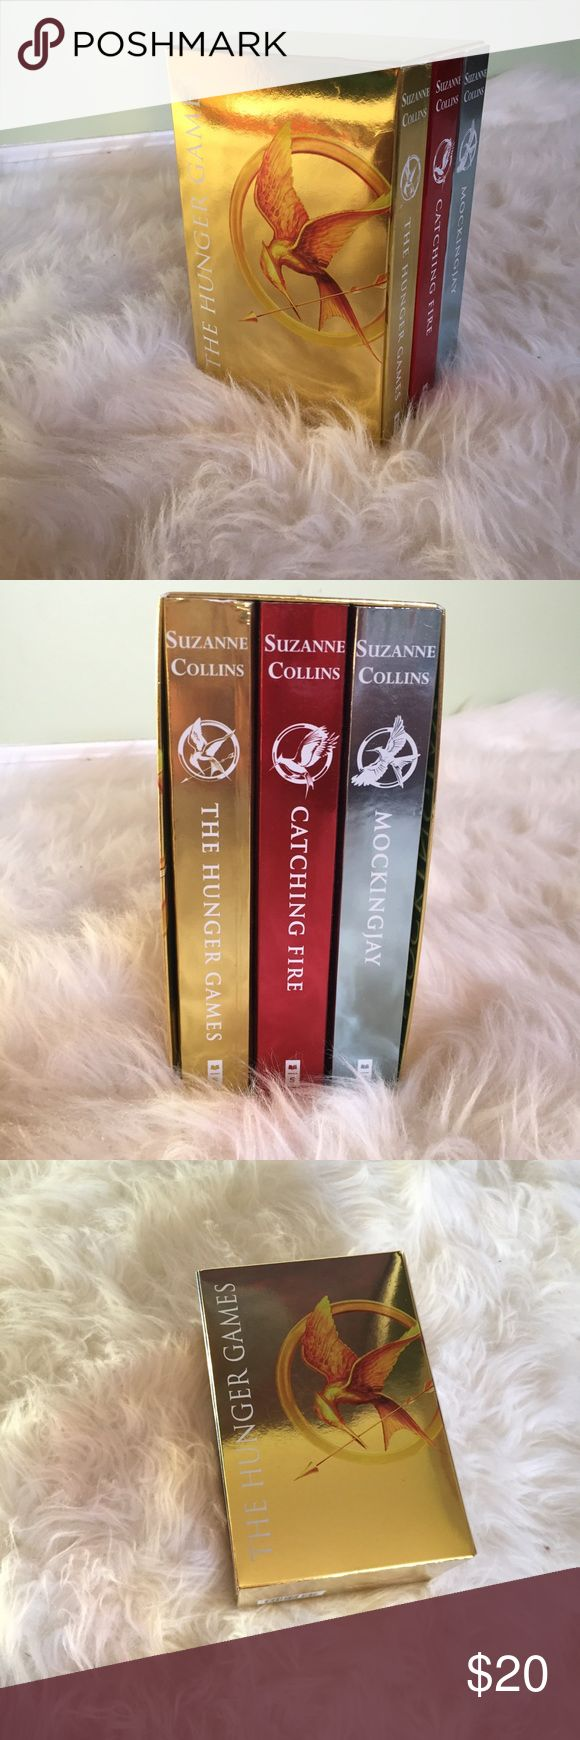 The Hungers Games Book Series All 3 Hunger Games books with shiny covers! Only problem I see is that only the first book (gold) was used so there is a bend at the top right corner of the cover... The other 2 books were not touched and are in perfect condition. Other